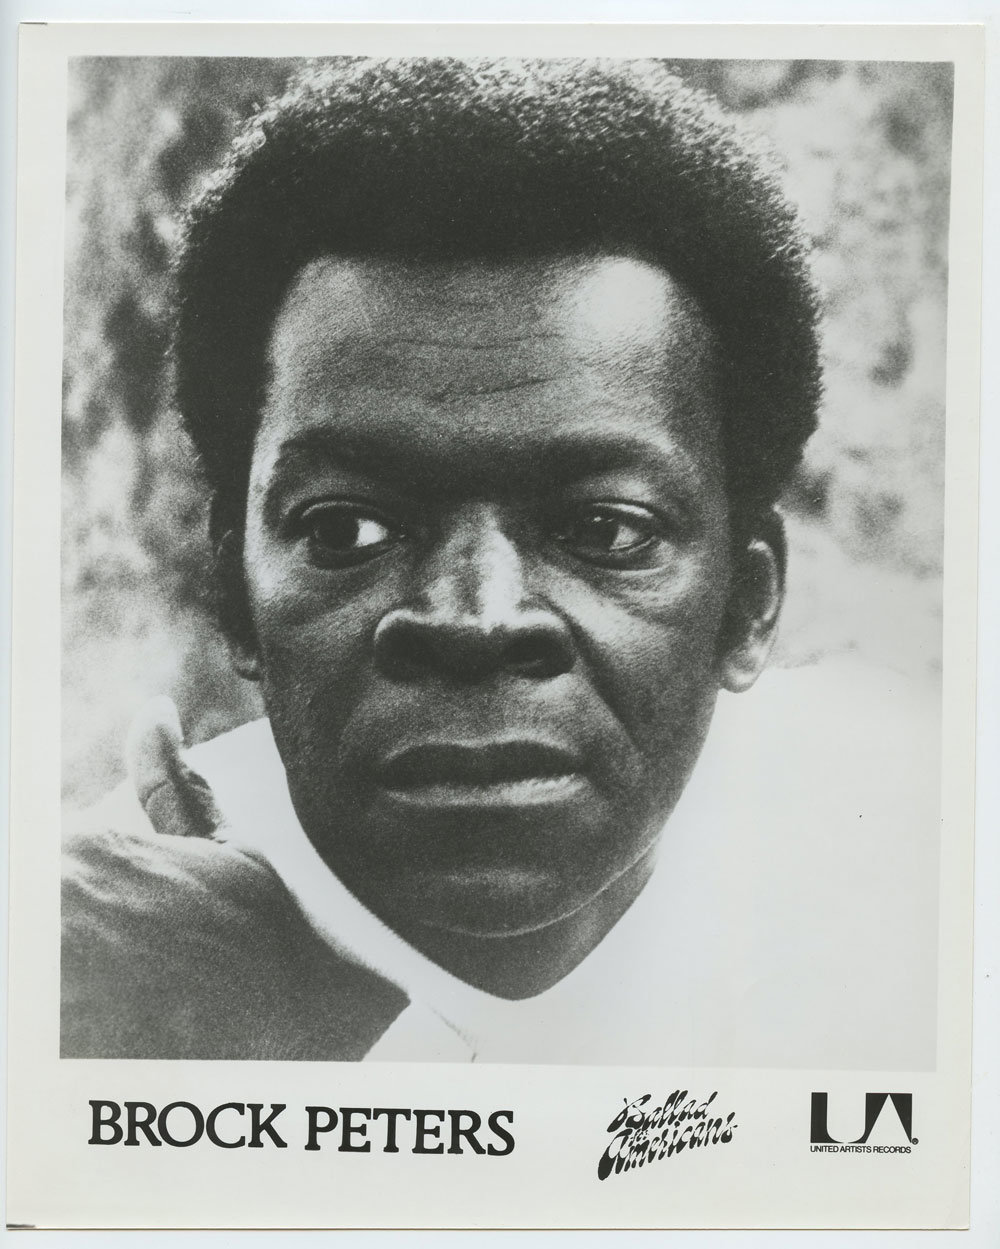 Brock Peters Photo 1976 Publicity Promo United Artists Records